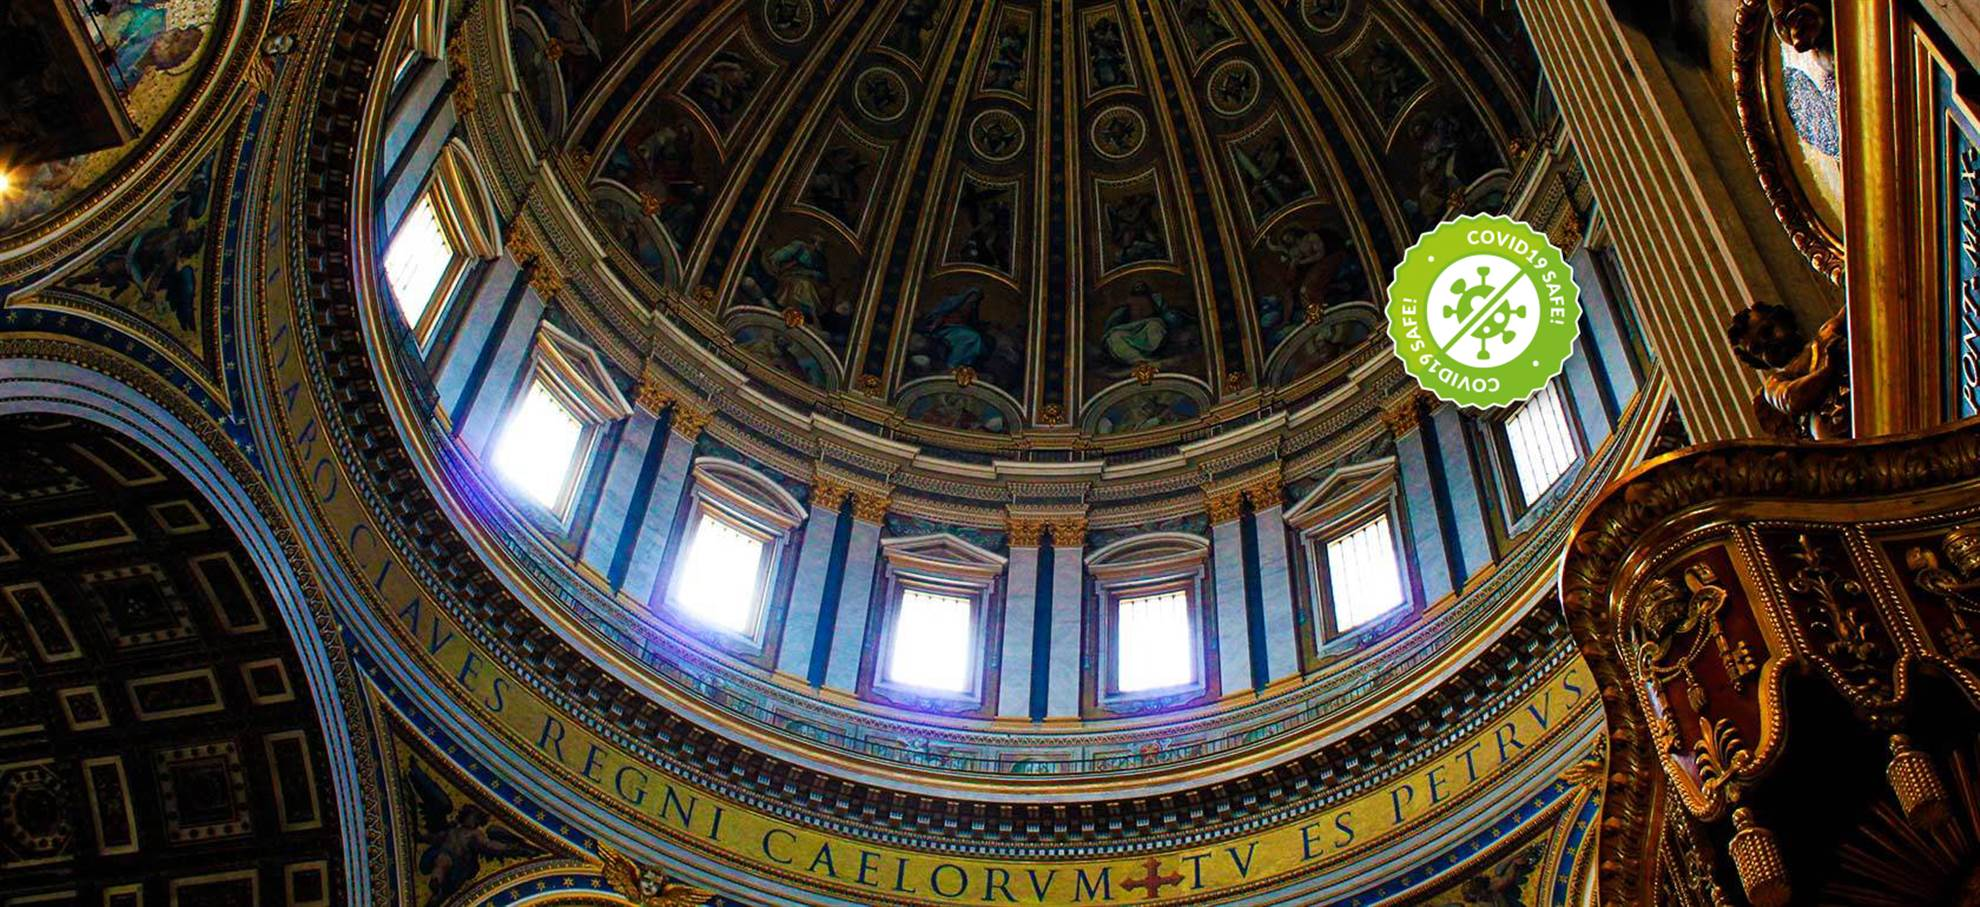 St. Peter's Basilica - Skip the line!